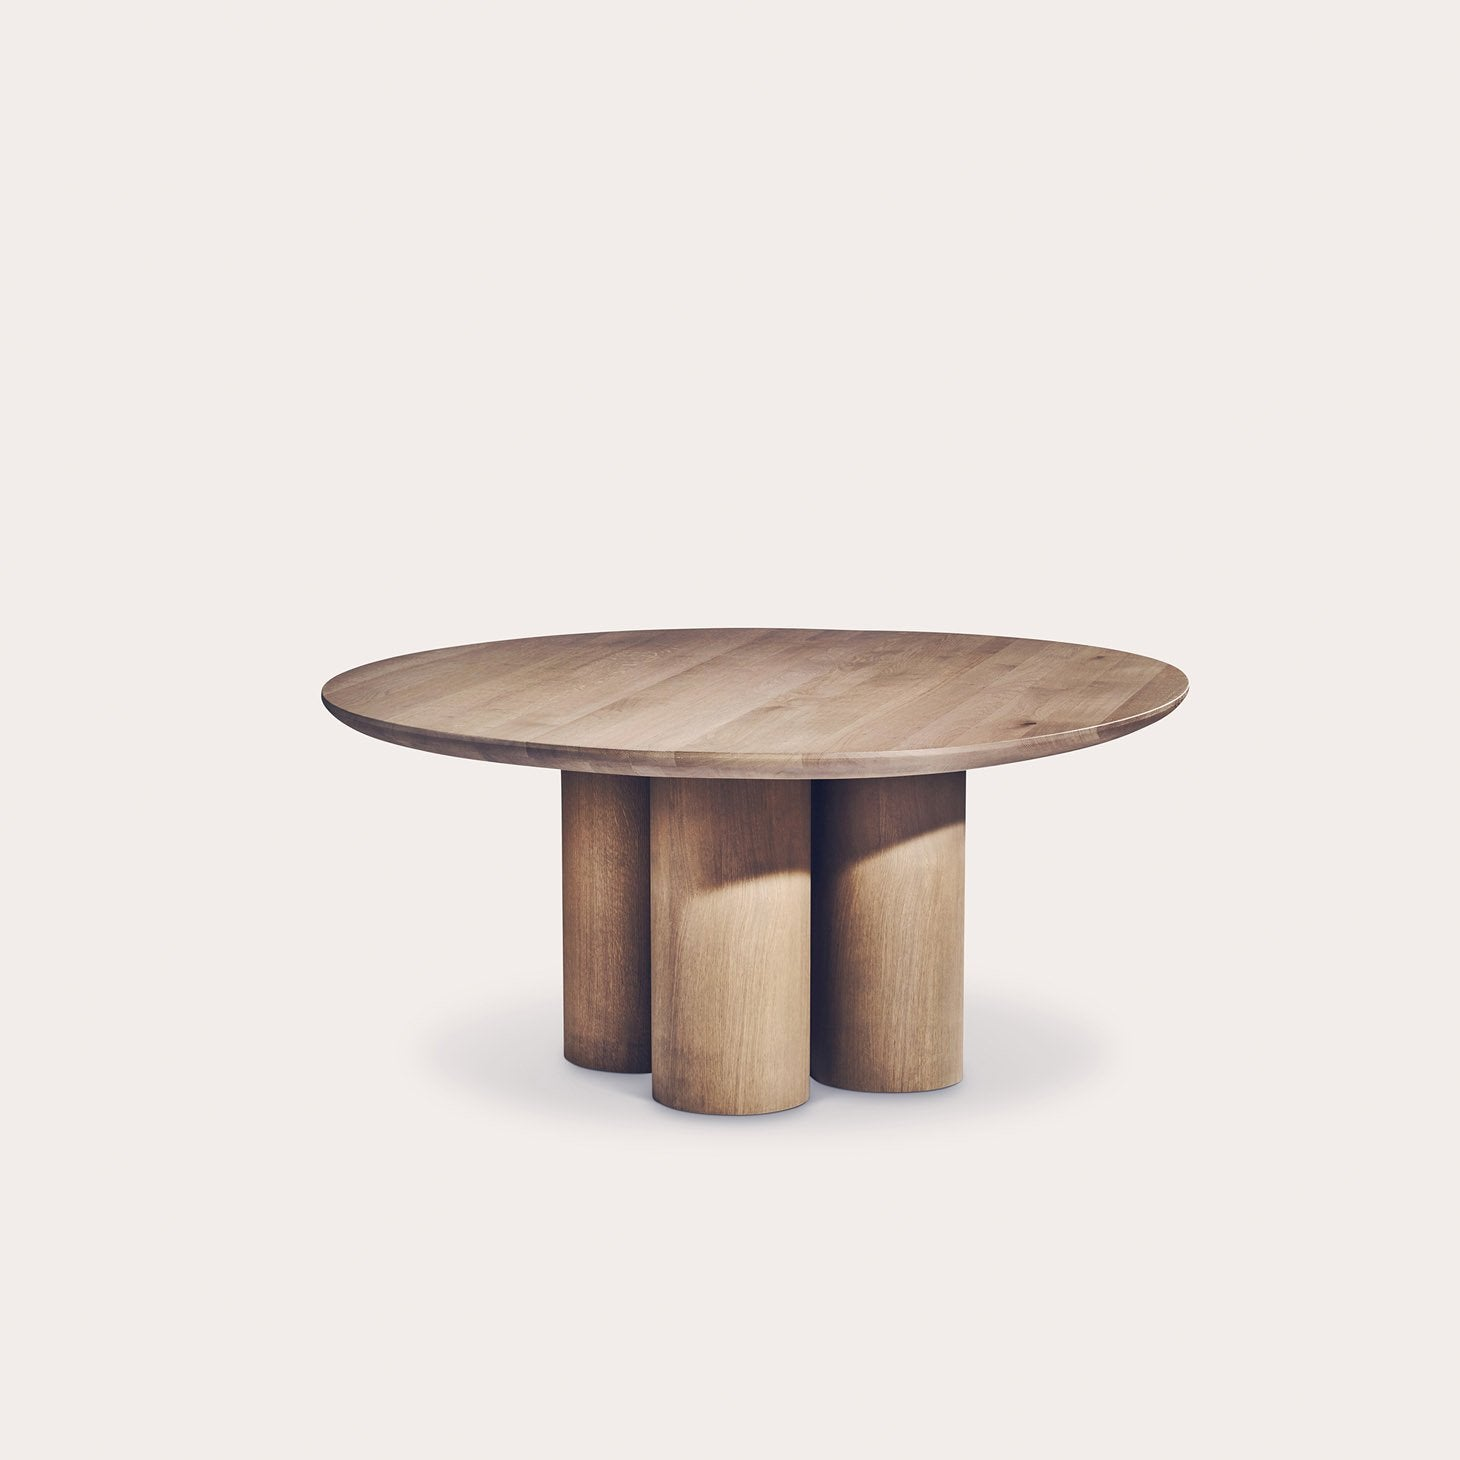 Olle Tables Piet Boon Designer Furniture Sku: 784-230-10011